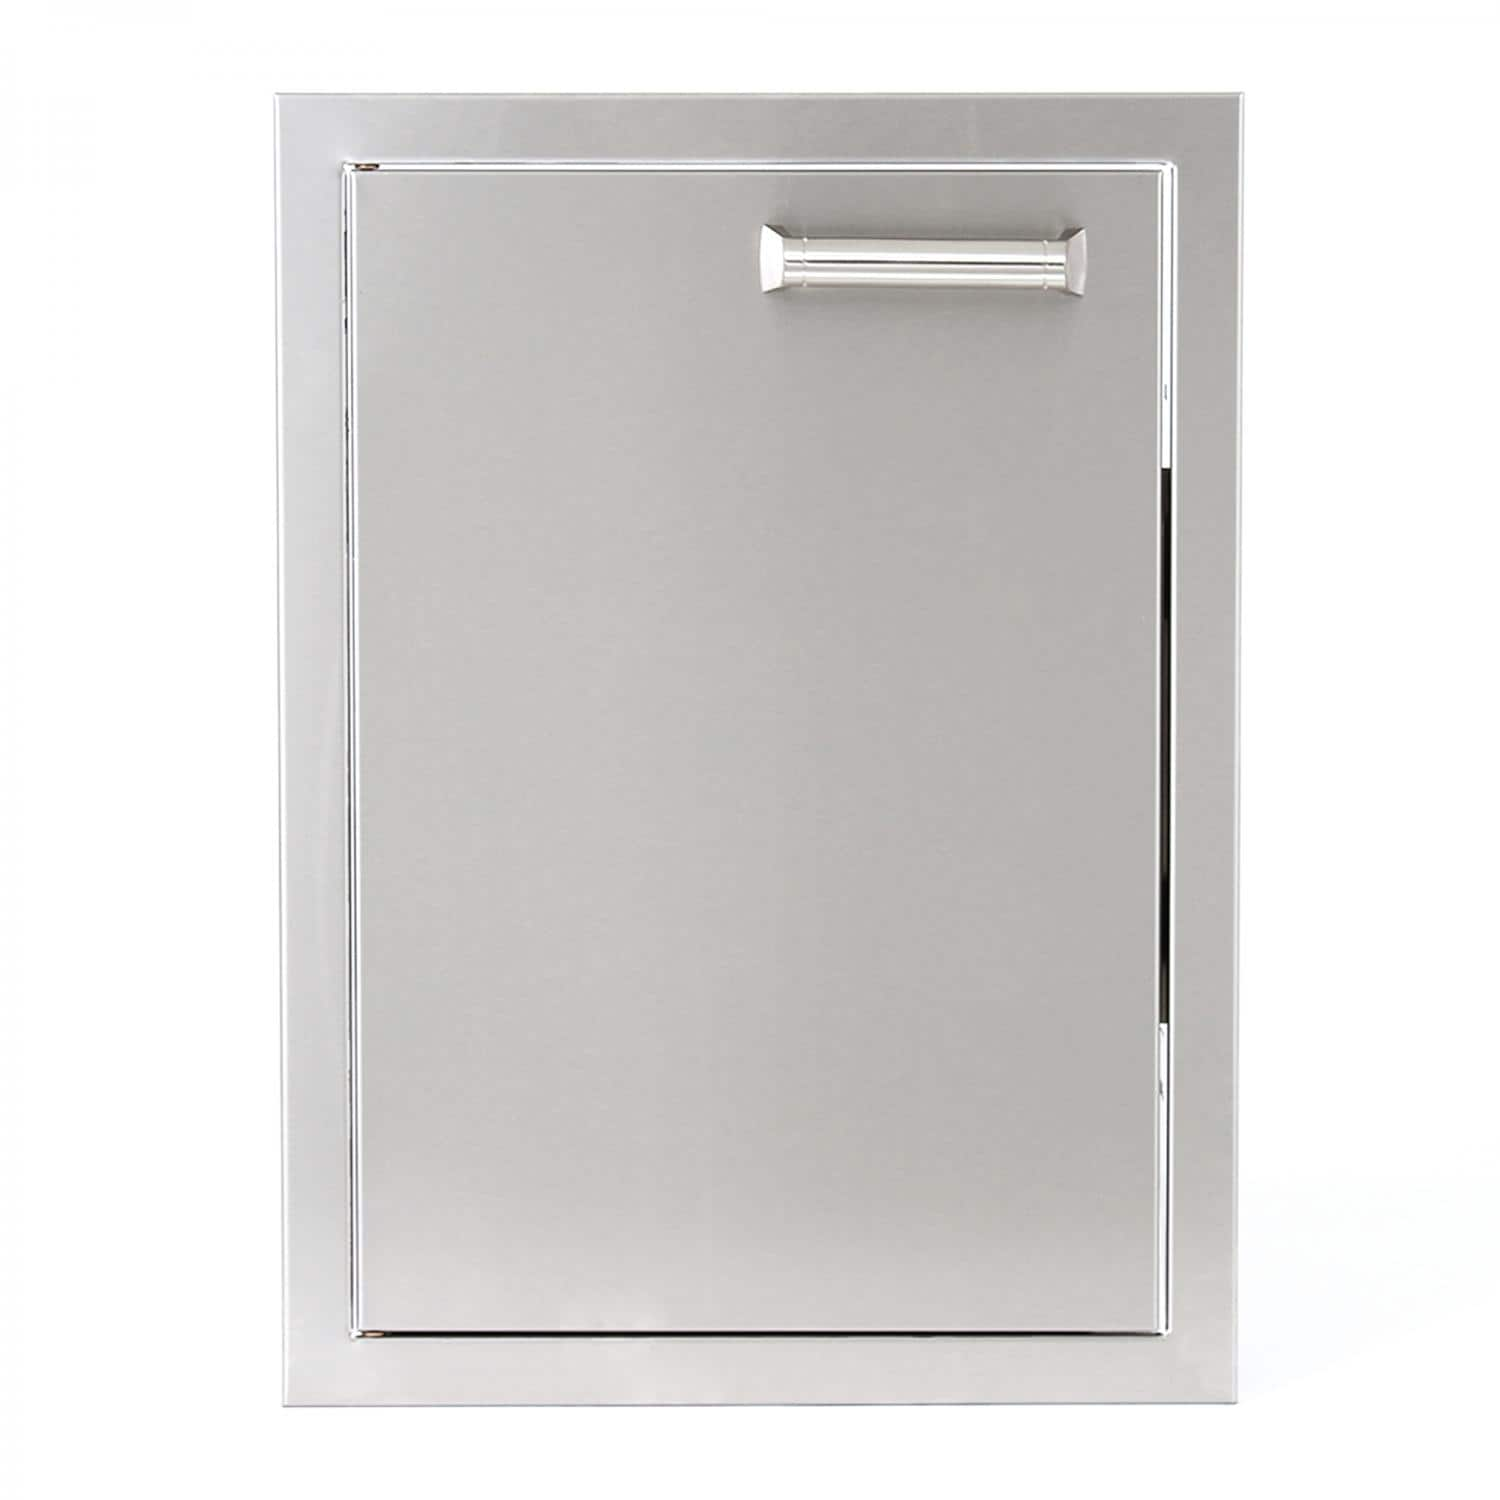 Sonoma series 14 inch stainless steel left for Door 9 sonoma